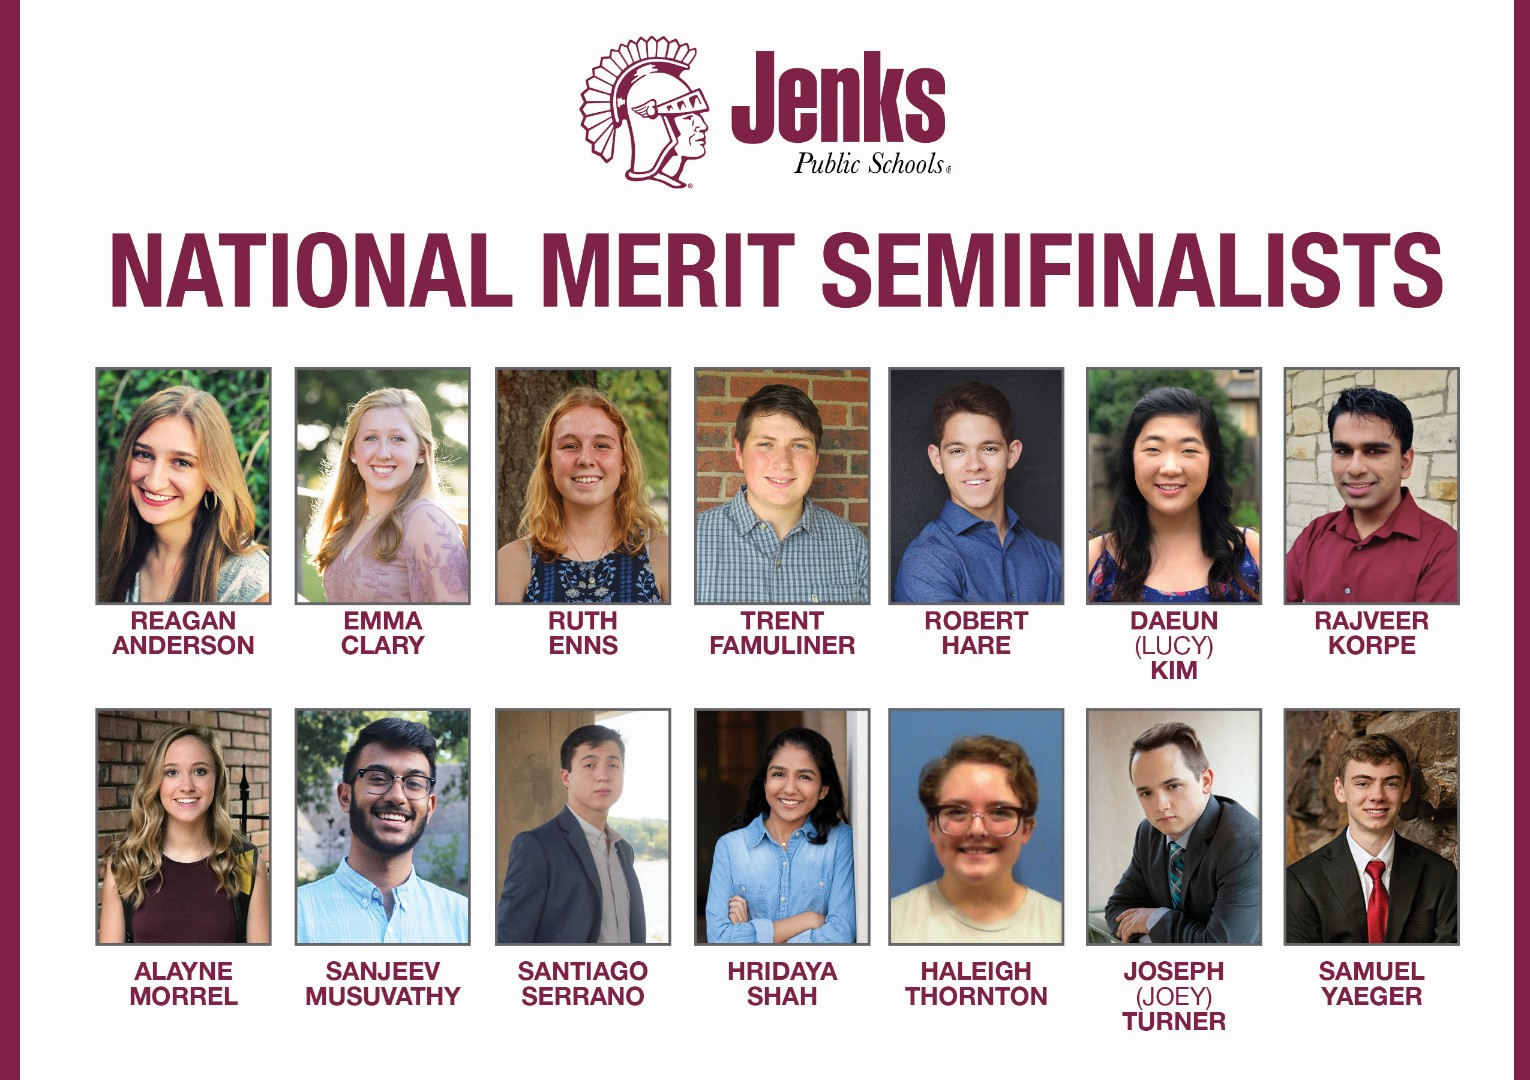 Seven girls and seven boys make up the 2019 National Merit Semifinalists from Jenks High School.